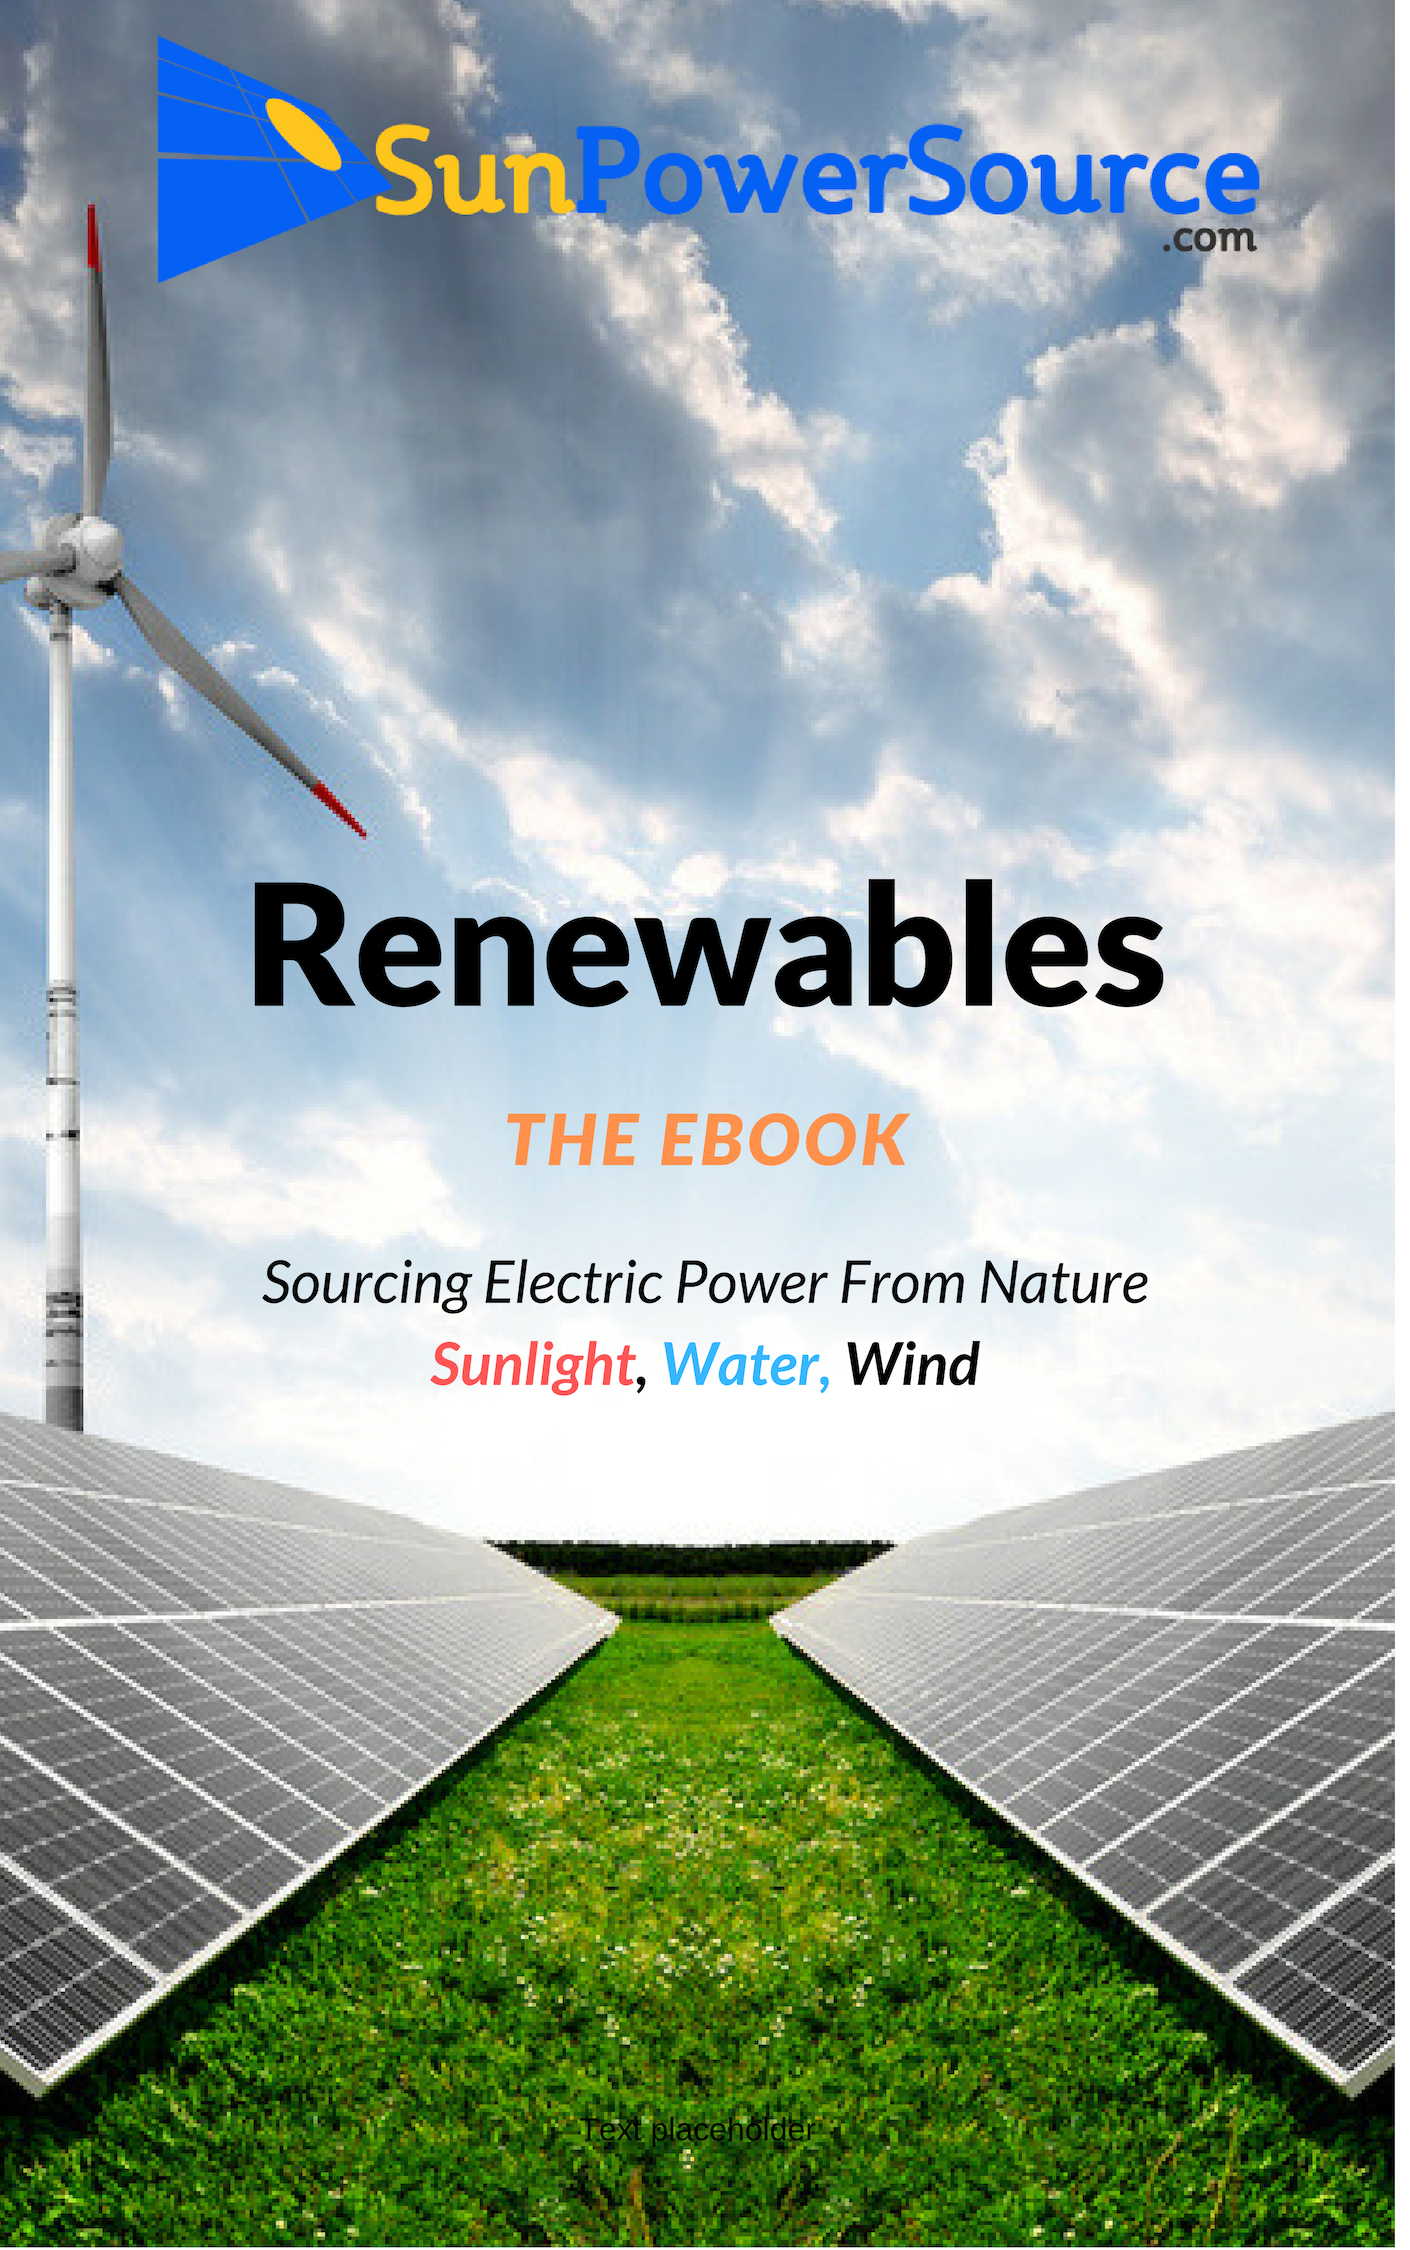 solar power, wind power renewables